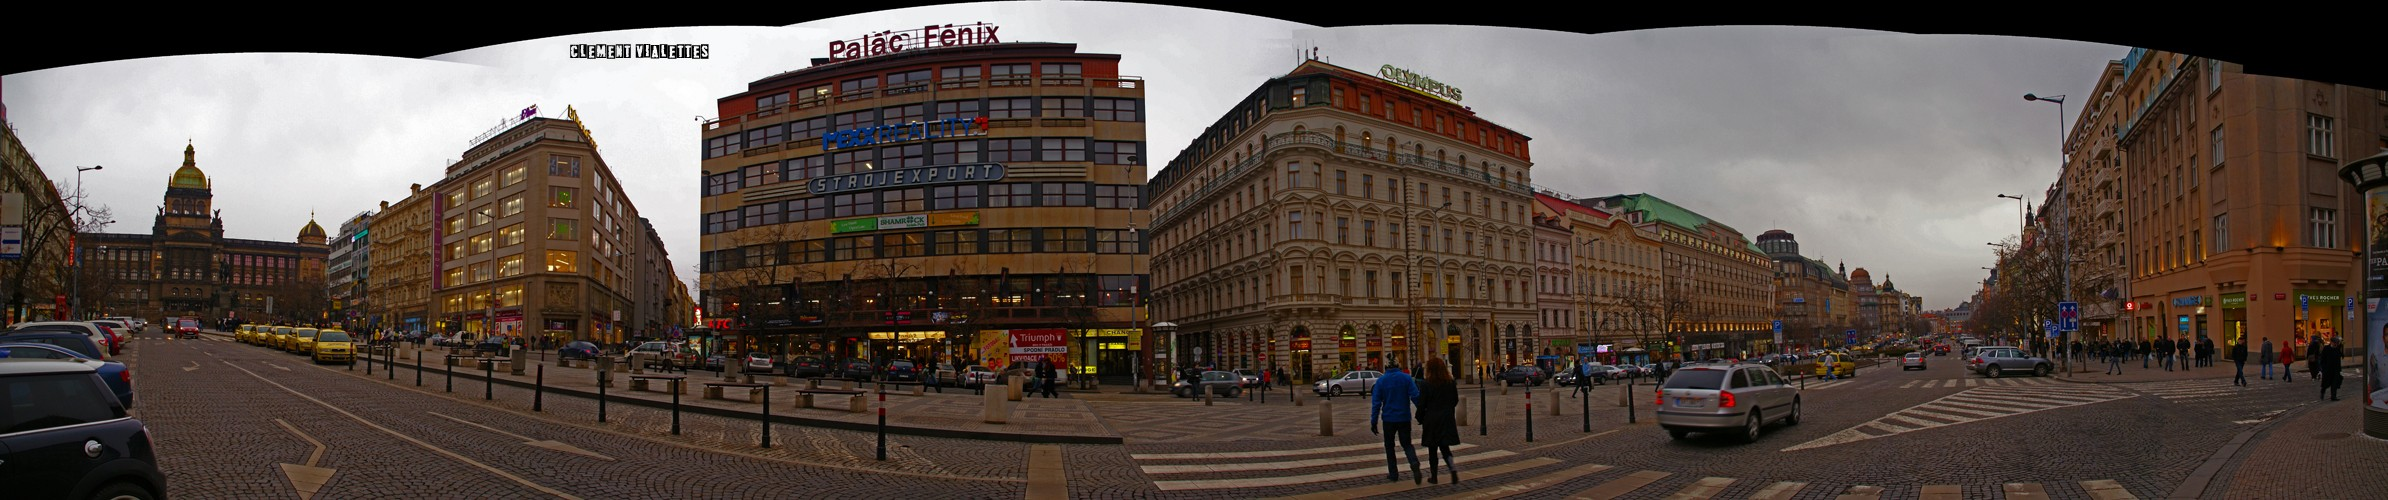 2010-03-prague-la-place-wenceslas-00.jpg